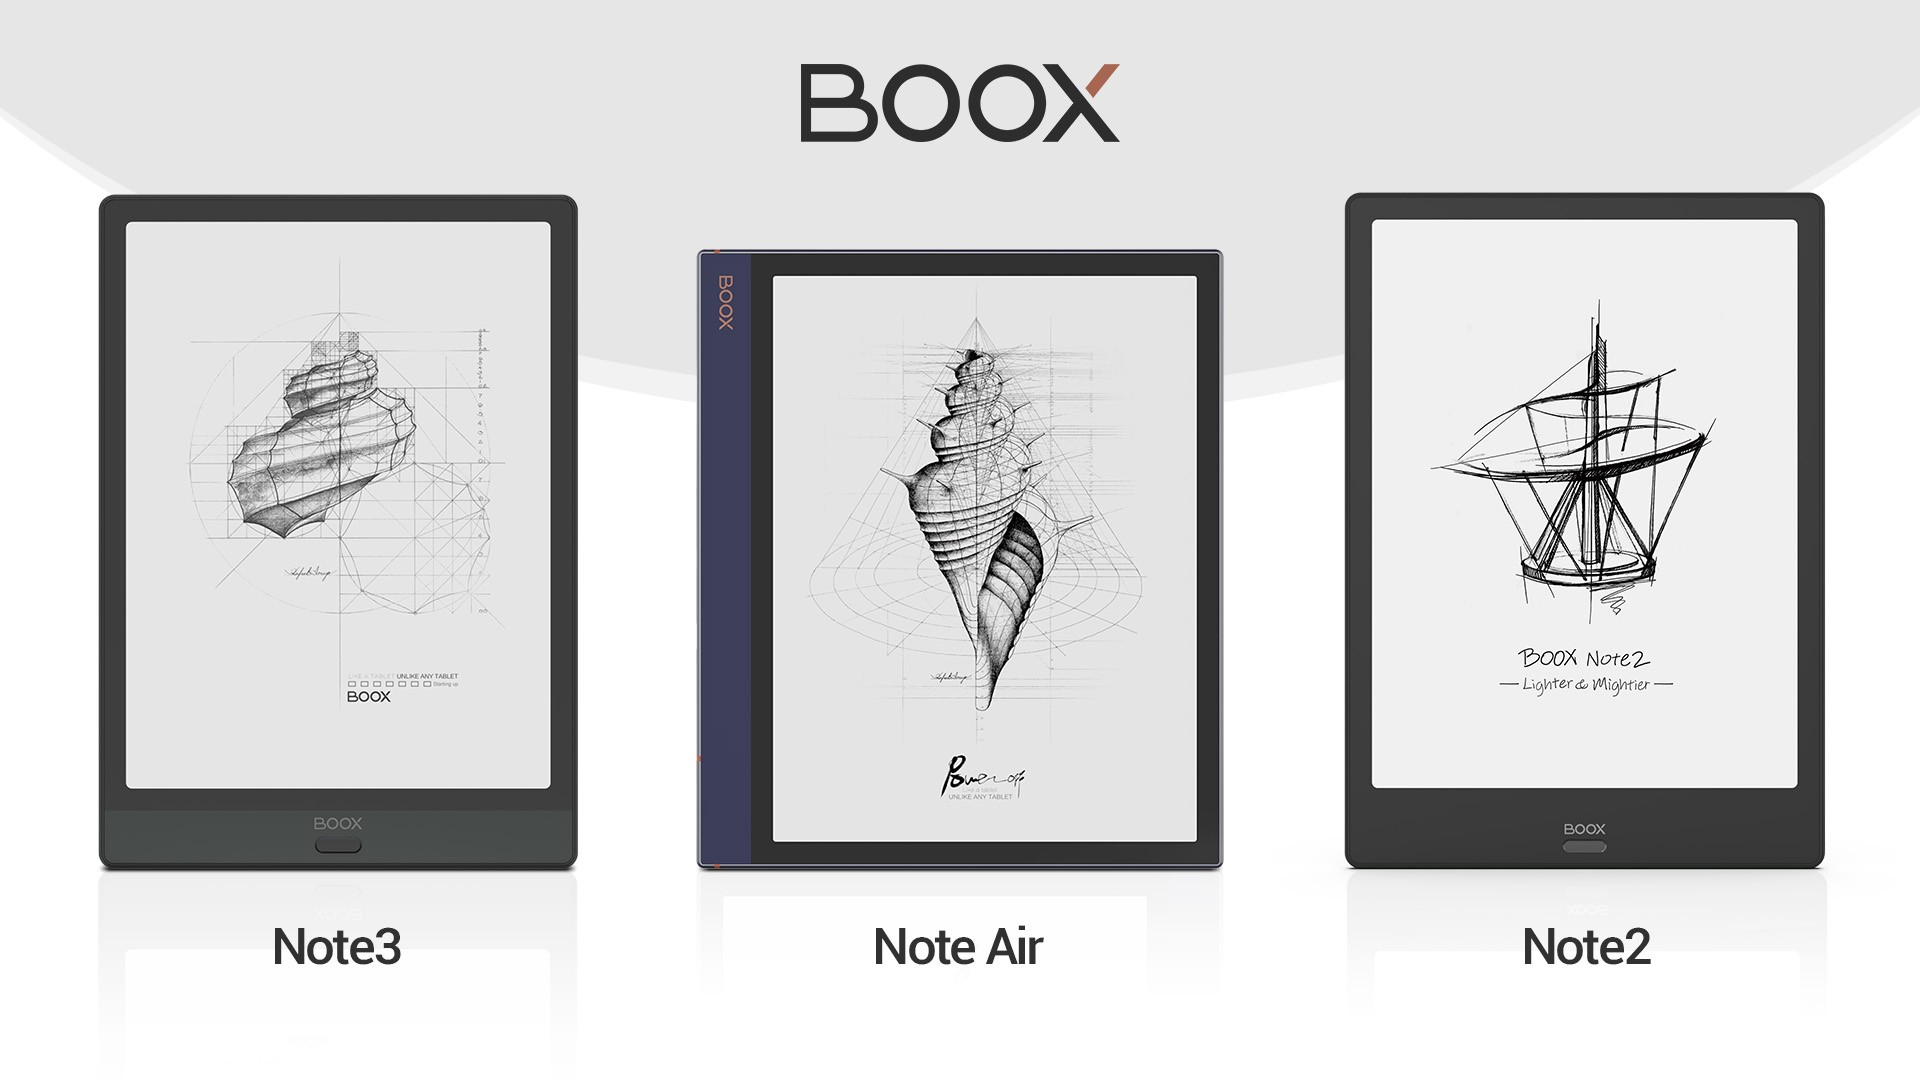 BOOX Note3, Note Air and Note2